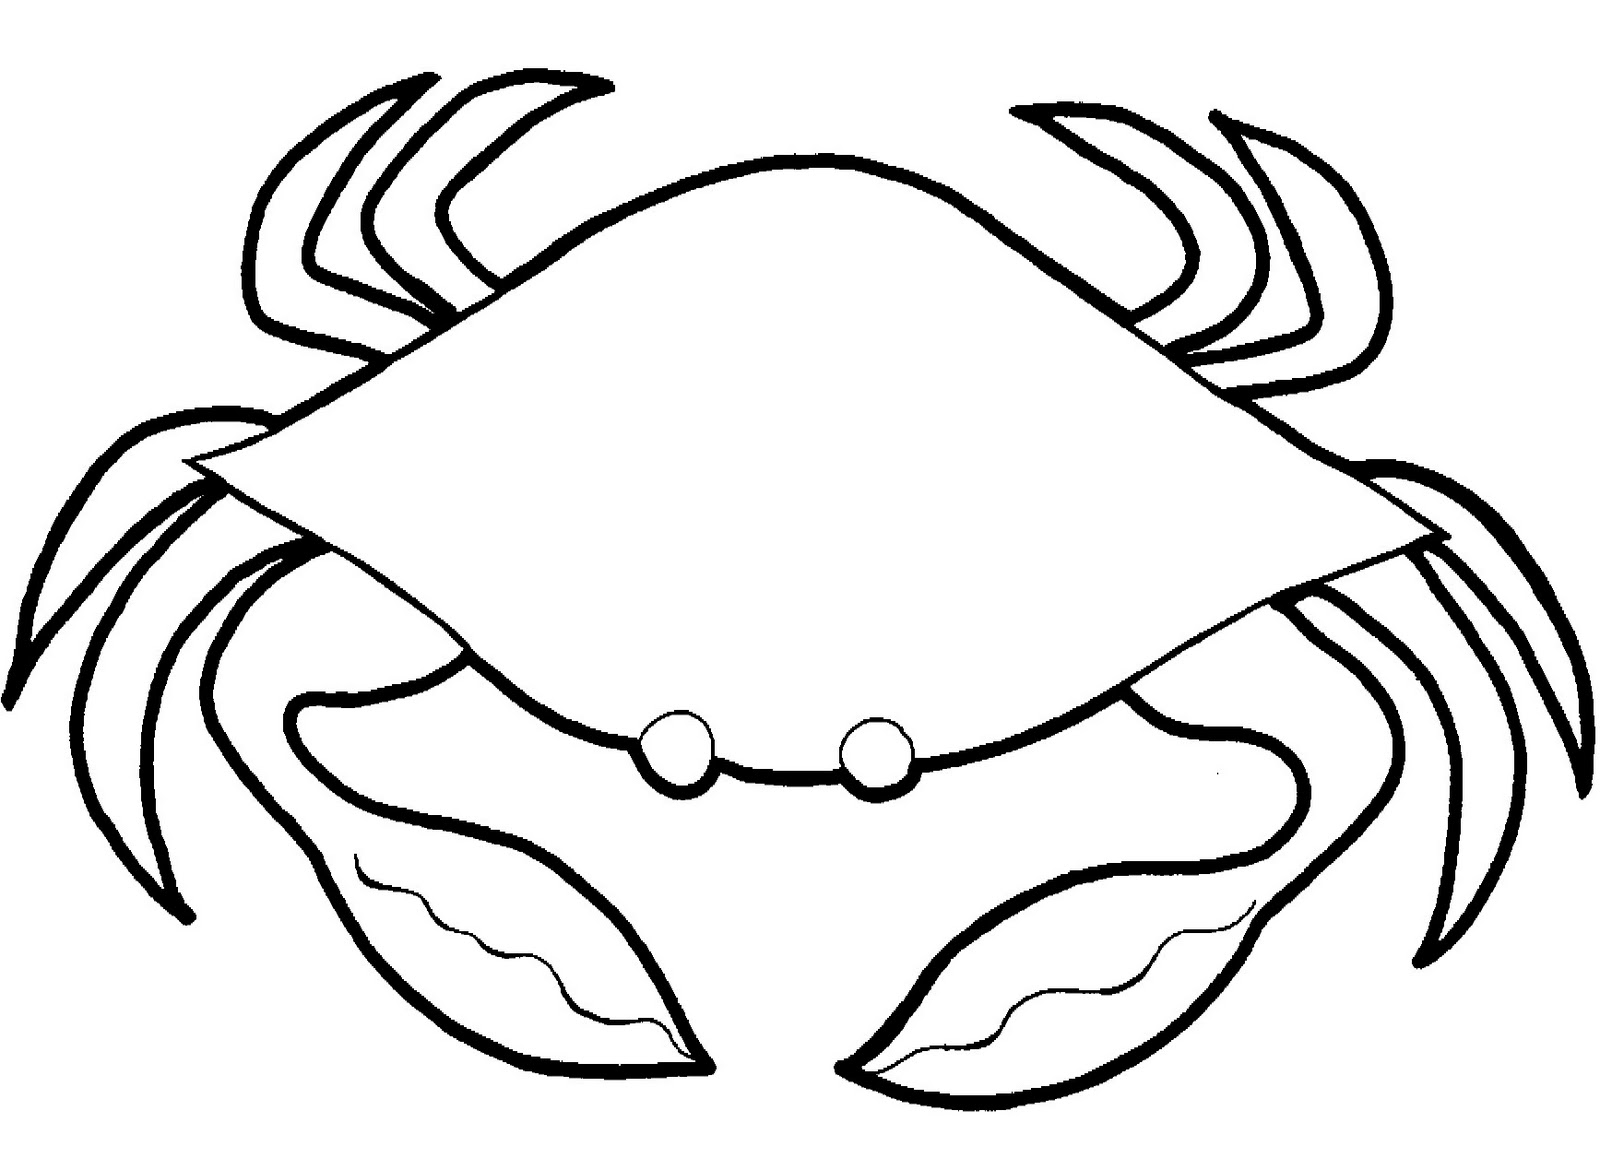 crab coloring pages free 17 marine animals quot crab quot coloring sheet pages crab coloring free